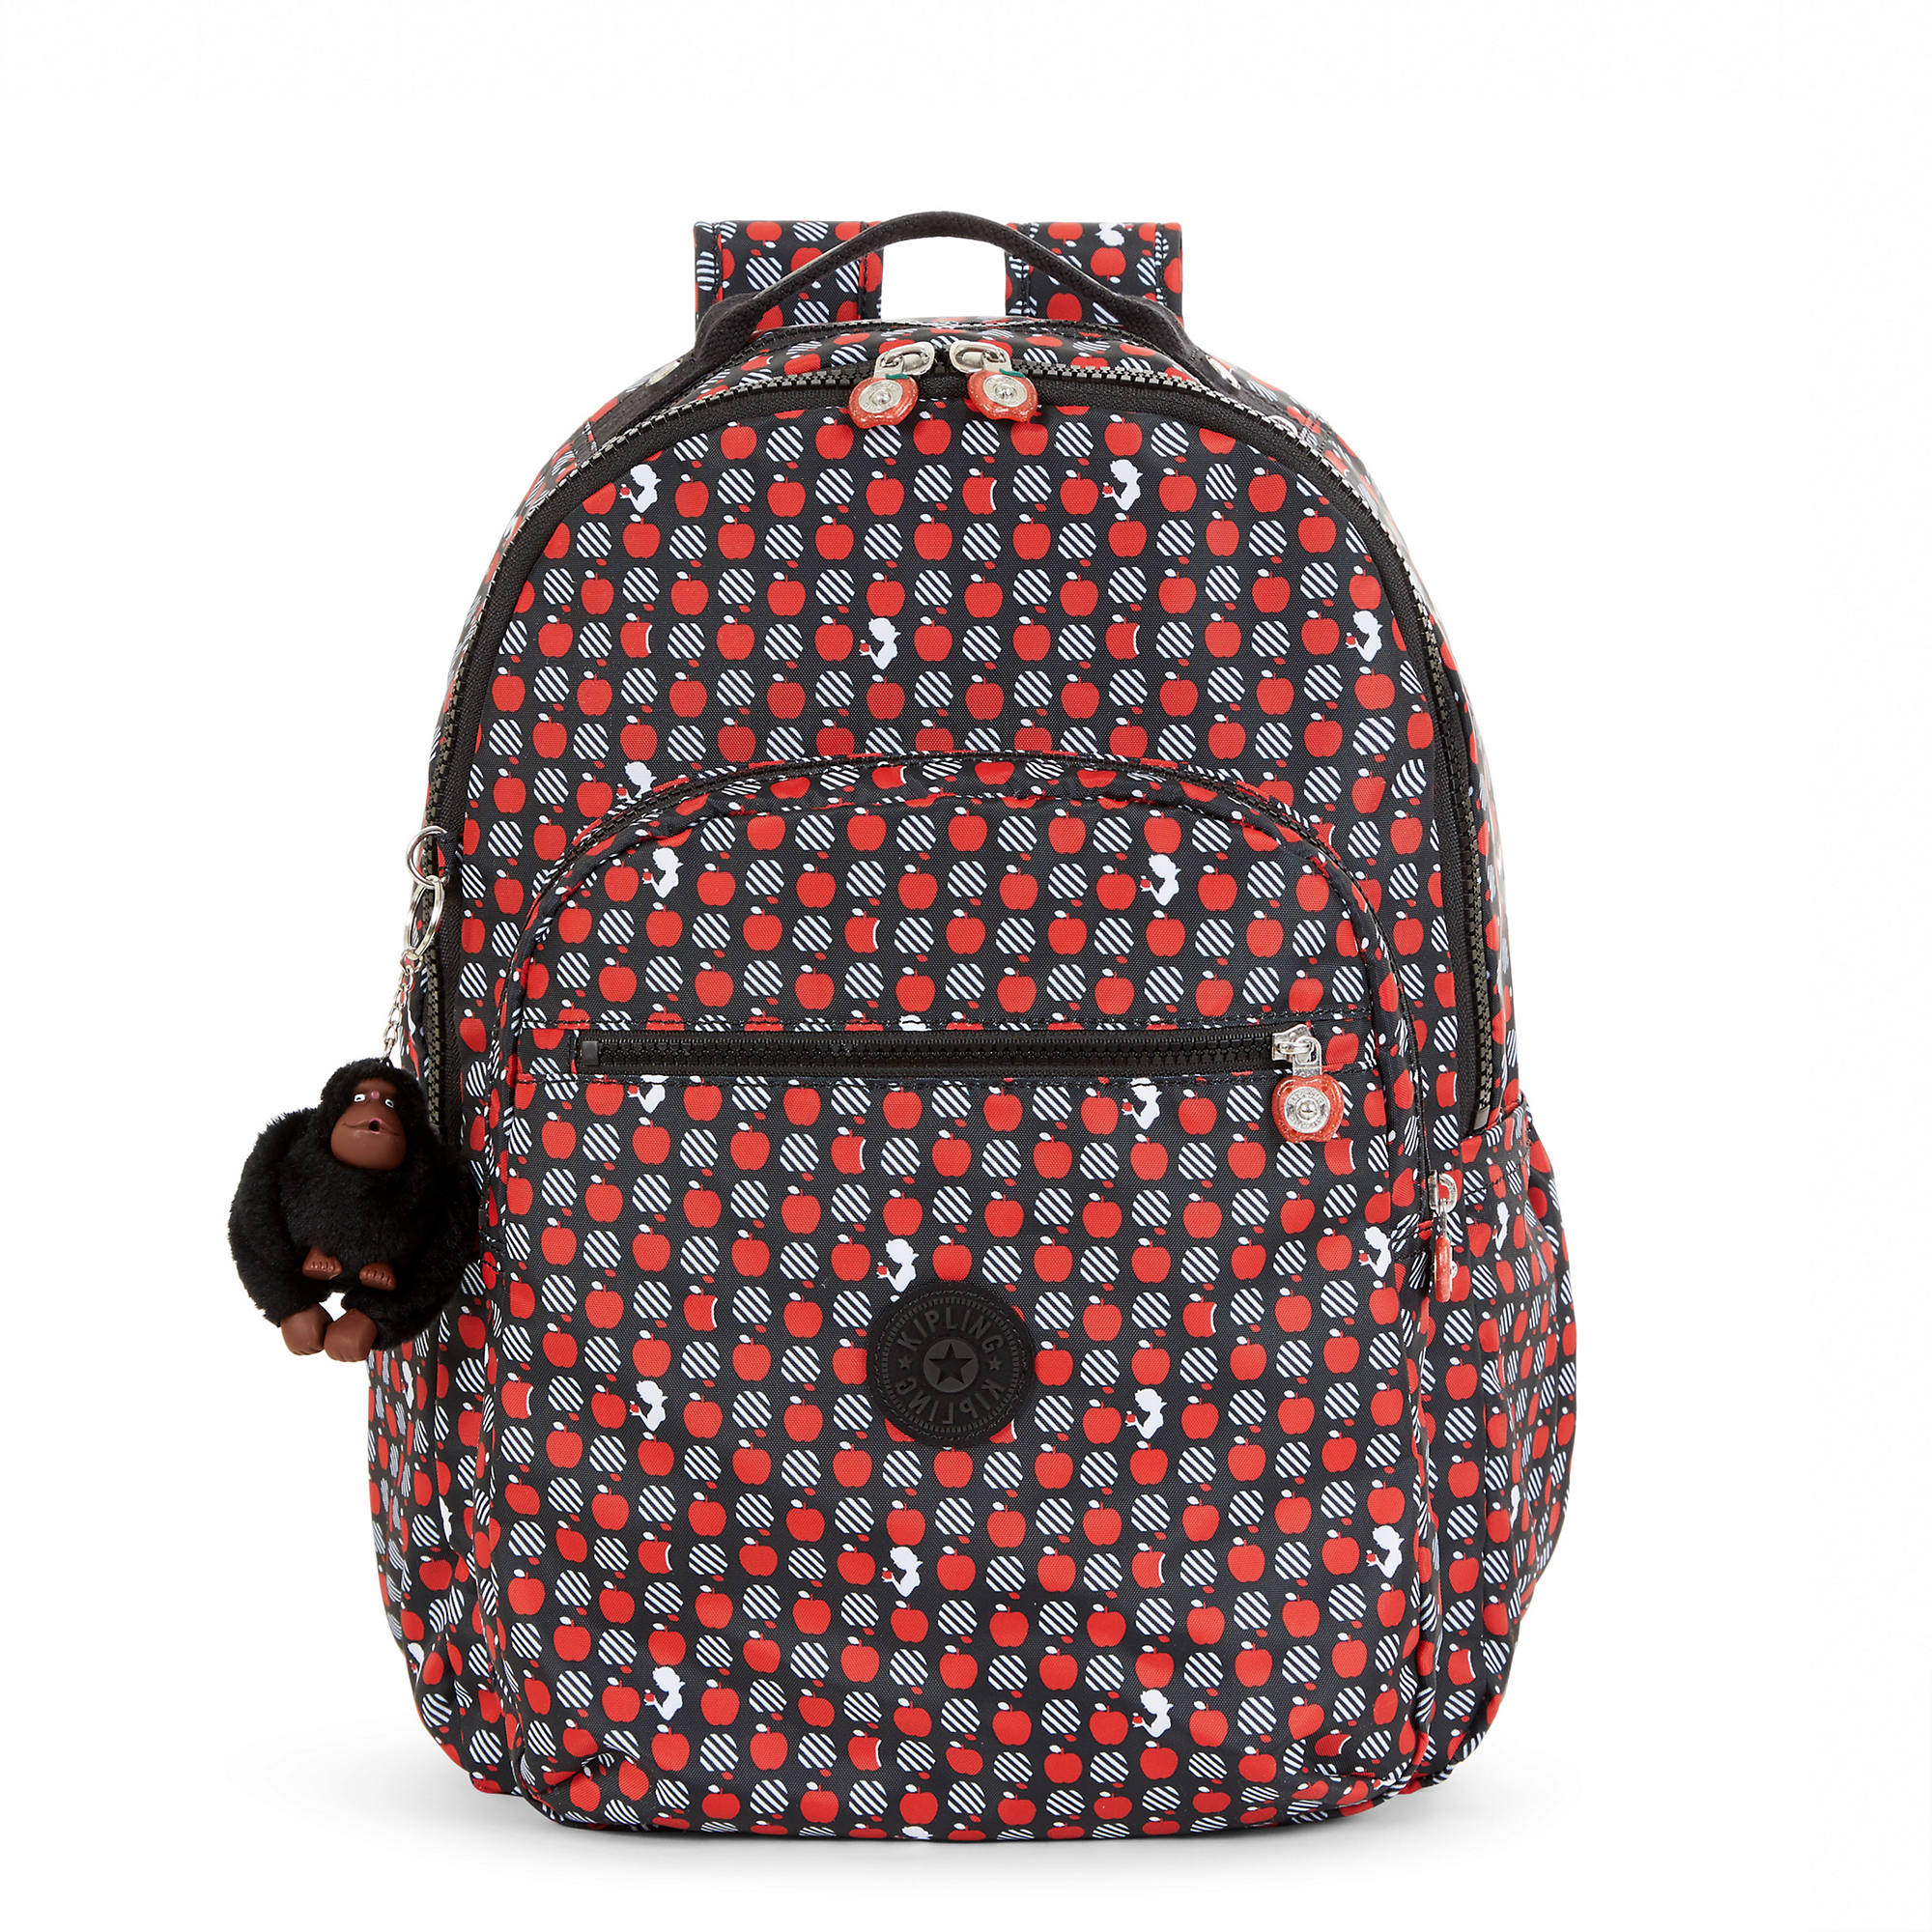 b67a0d06d5 Disney's Snow White Seoul Large Printed Laptop Backpack,Active Red,large